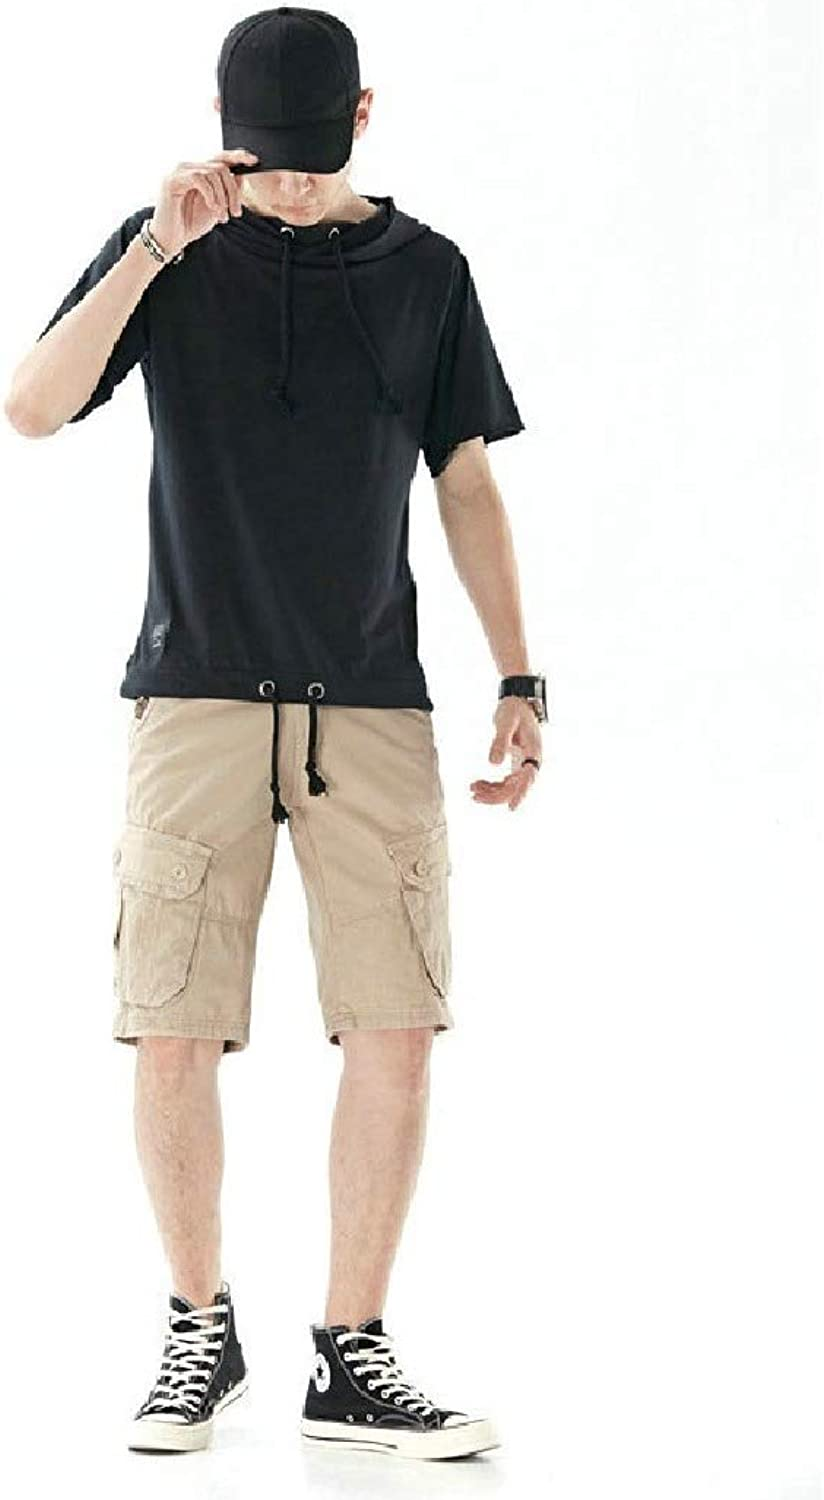 Coolhere Mens Cotton Relaxed-Fit with Hooded Outdoor Leisure T-Shirt Shorts Sets